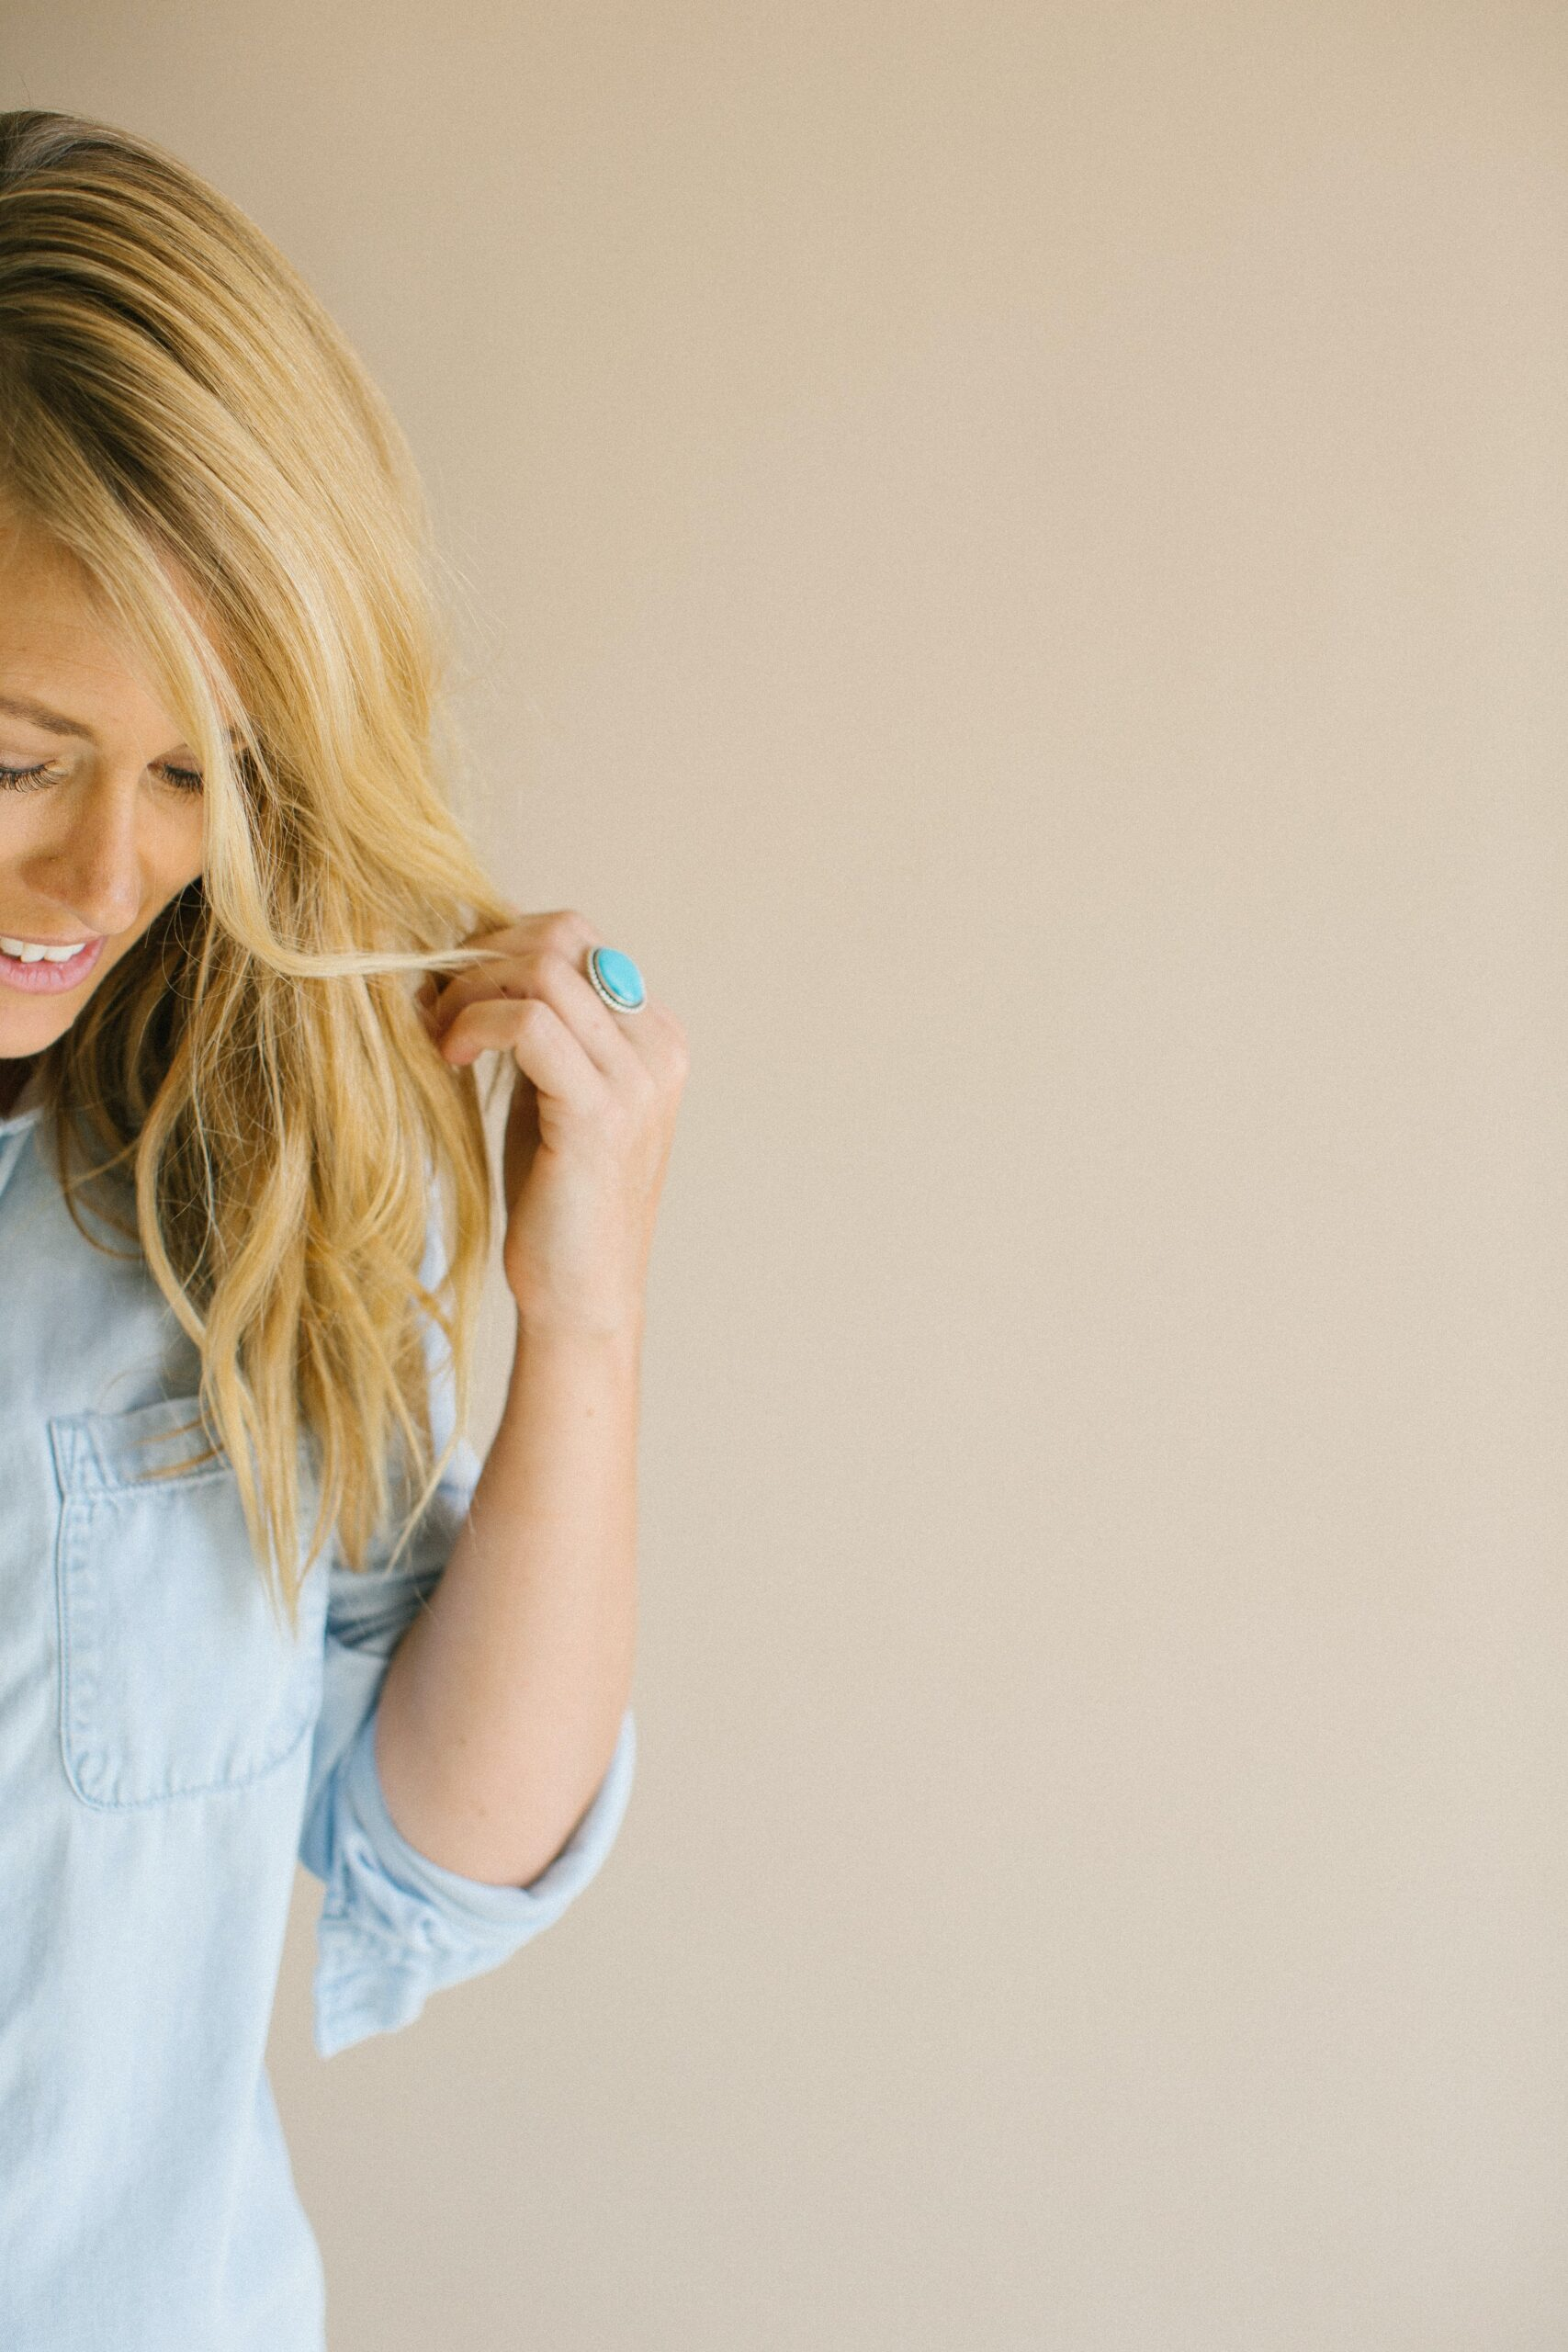 Make Your Hair Look Fabulous Fast Tips for Busy Moms